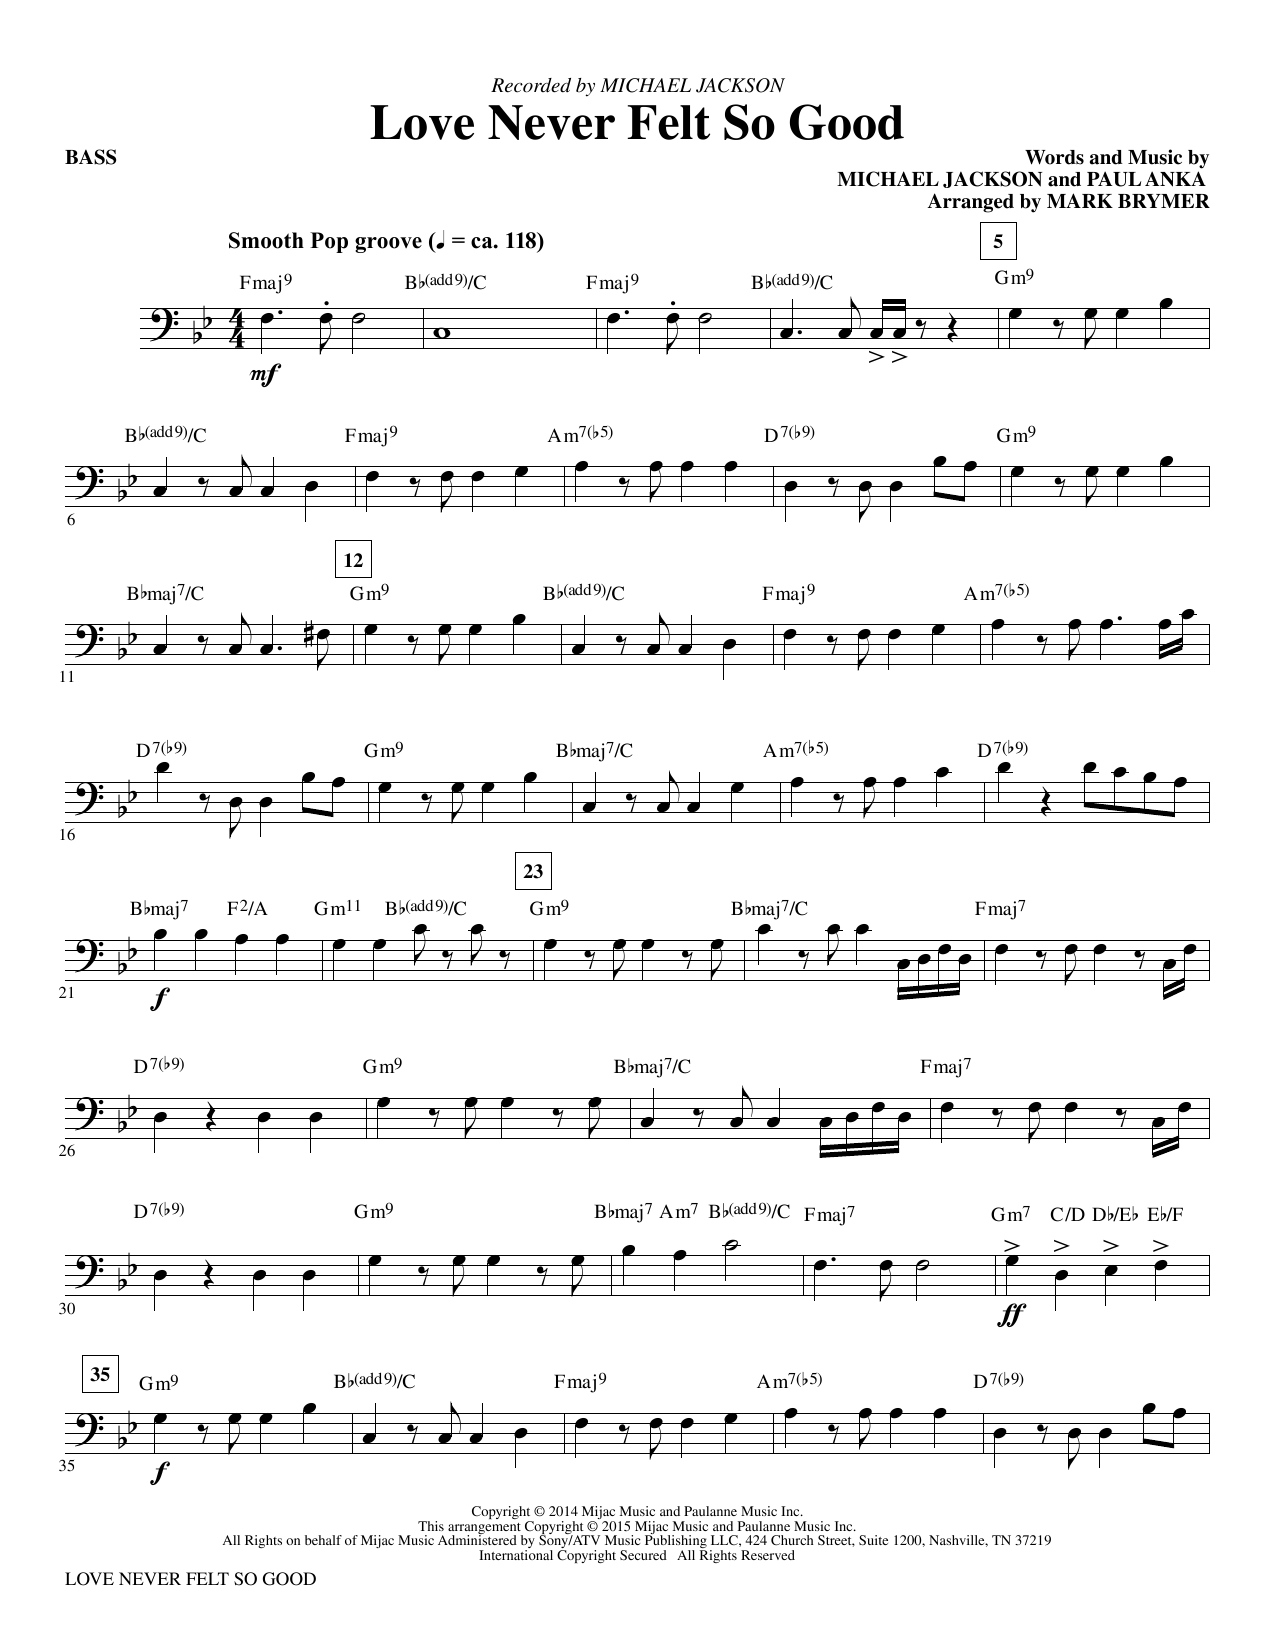 Love Never Felt So Good - Bass Sheet Music